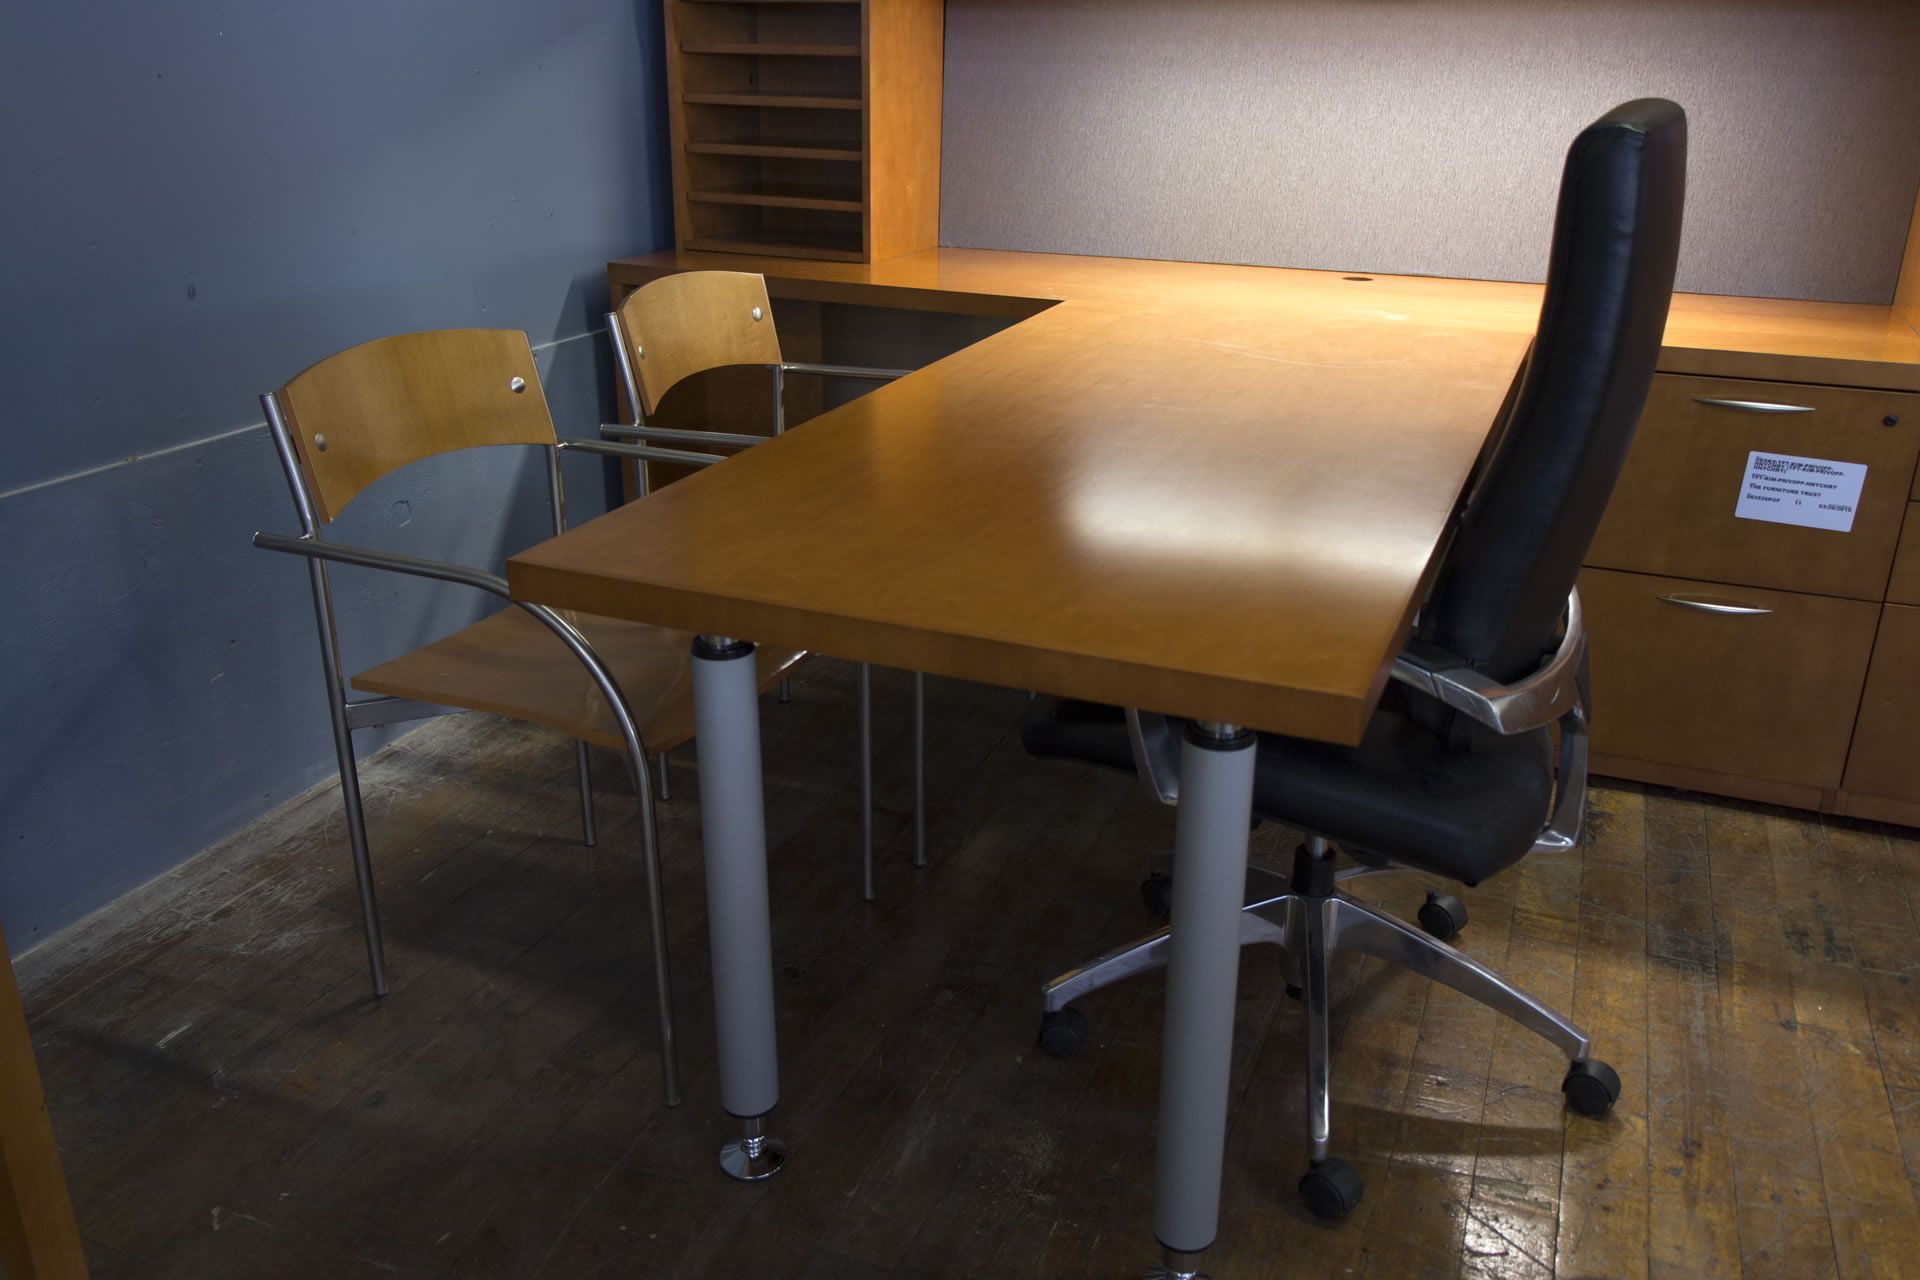 peartreeofficefurniture_peartreeofficefurniture_mg_5505.jpg